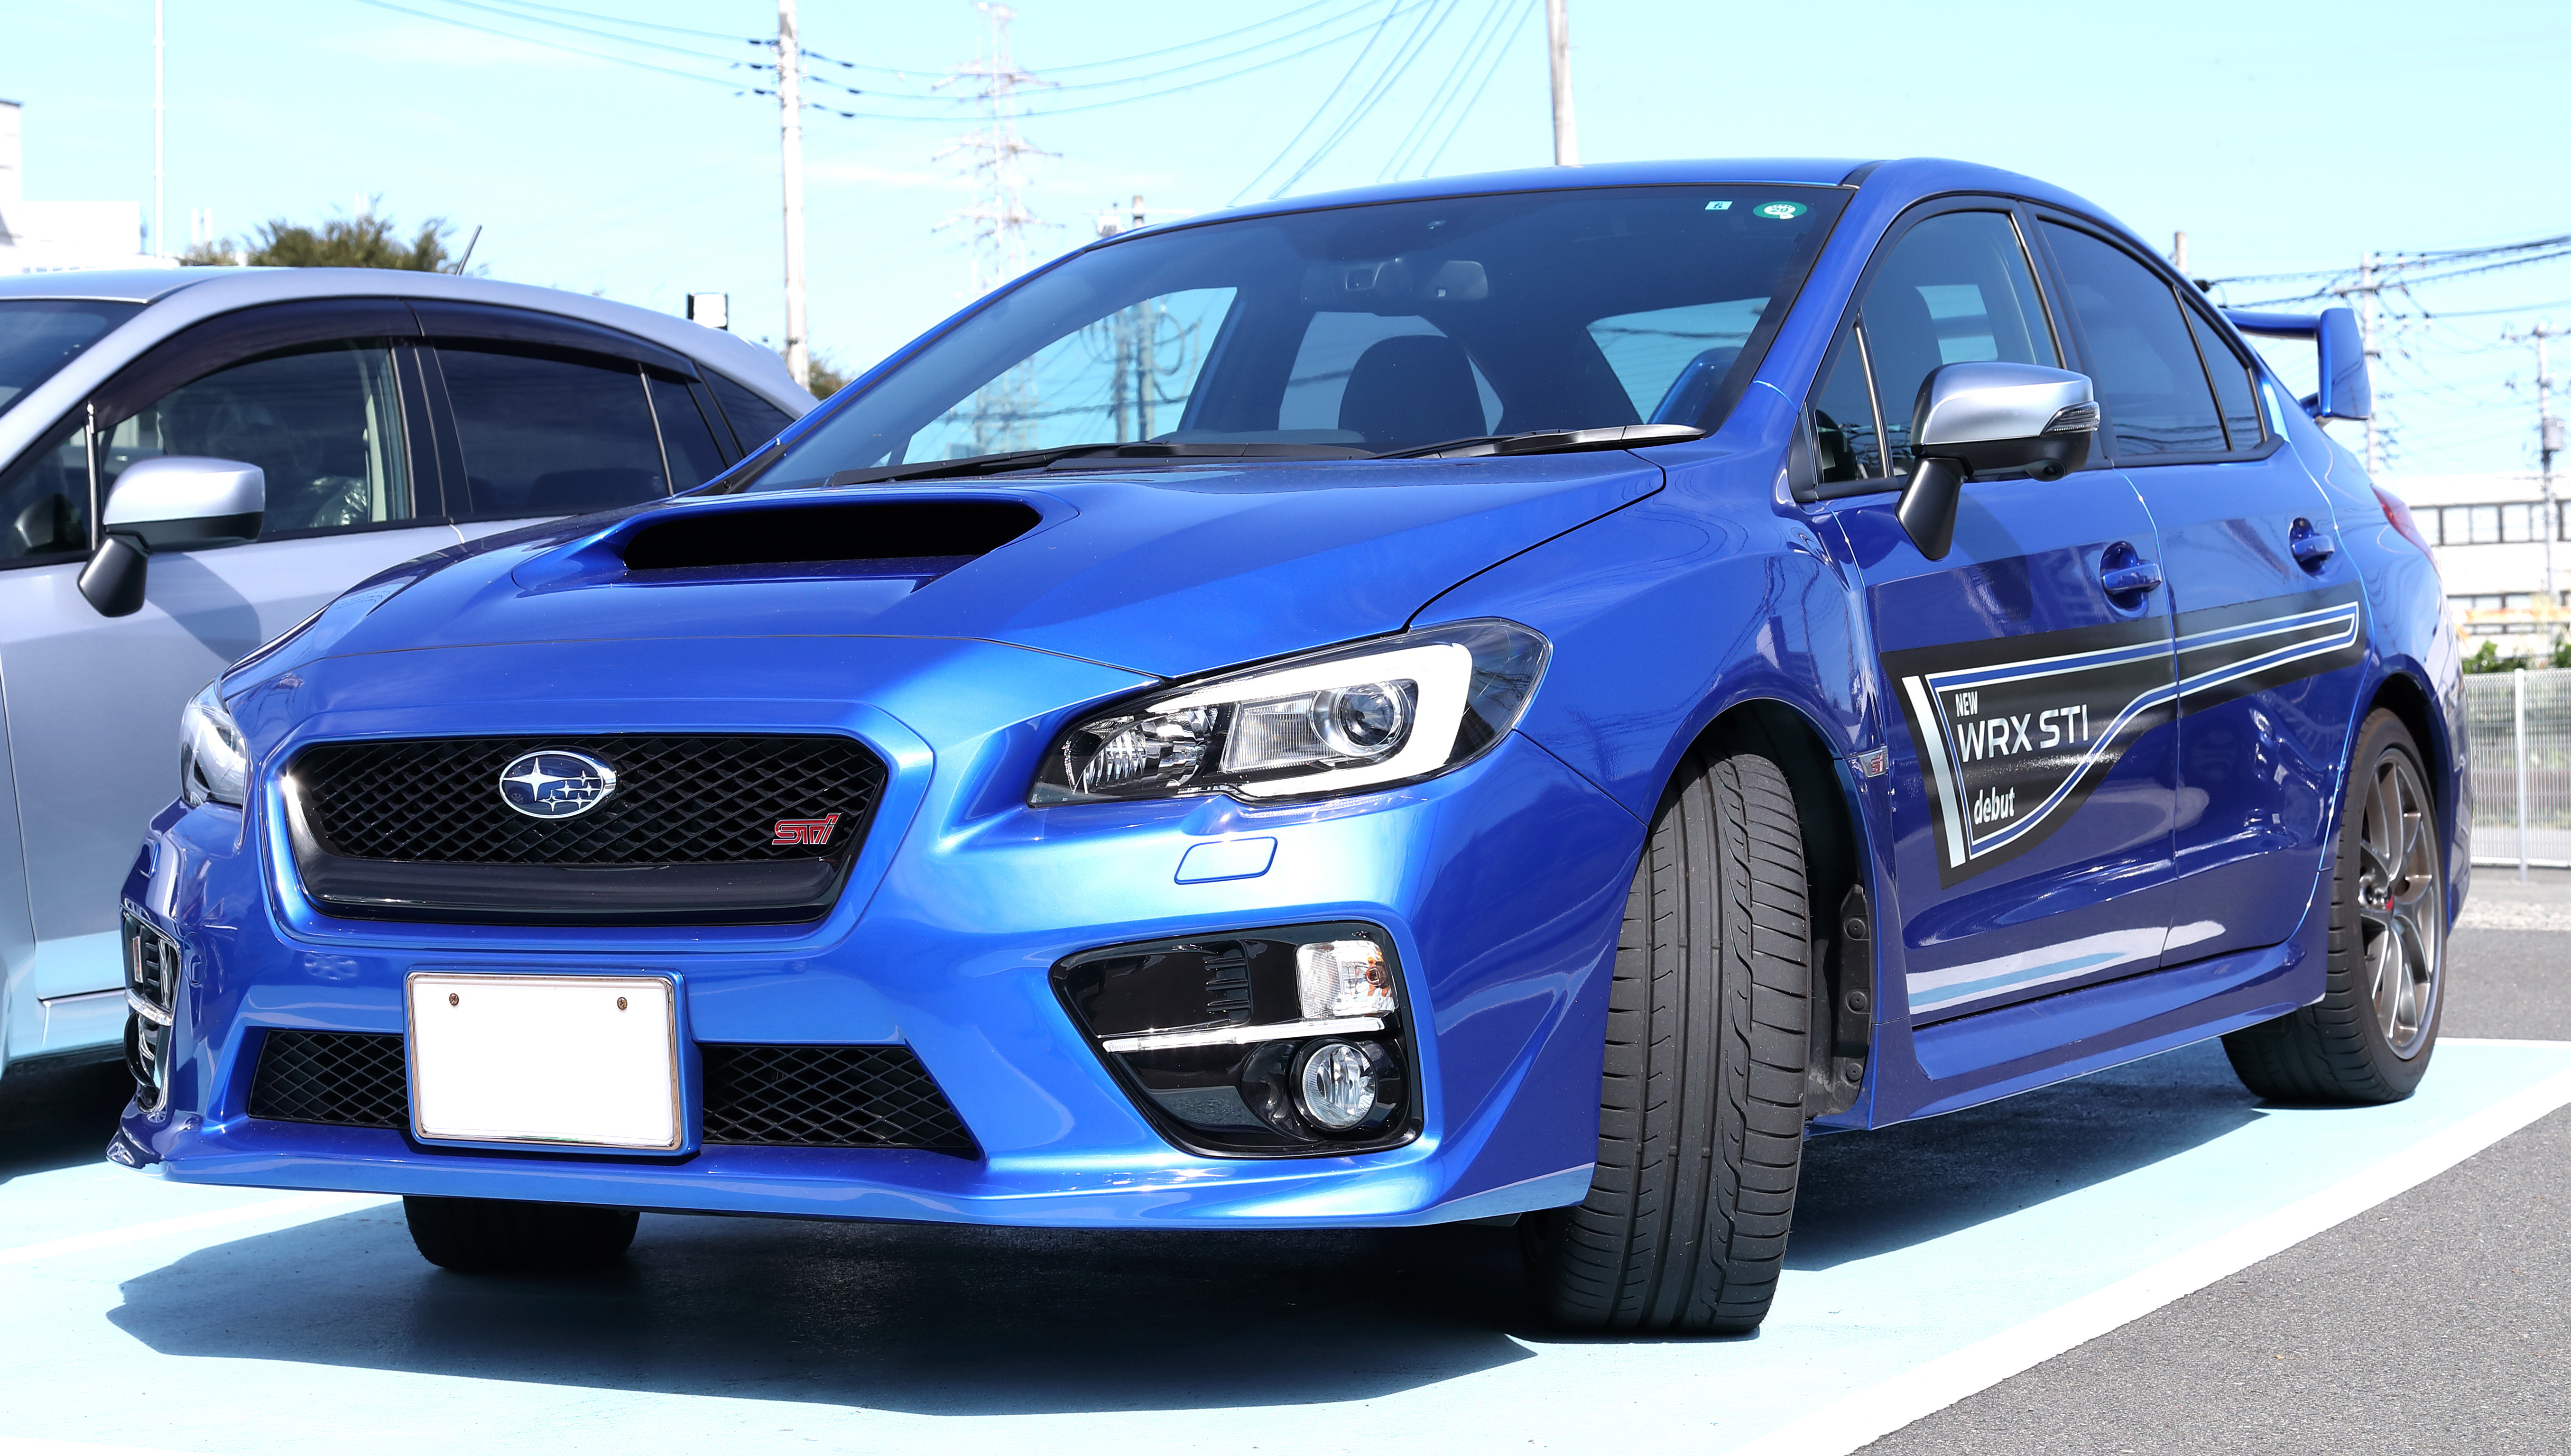 2021 Wrx Sti Hyperblue Redesign and Concept